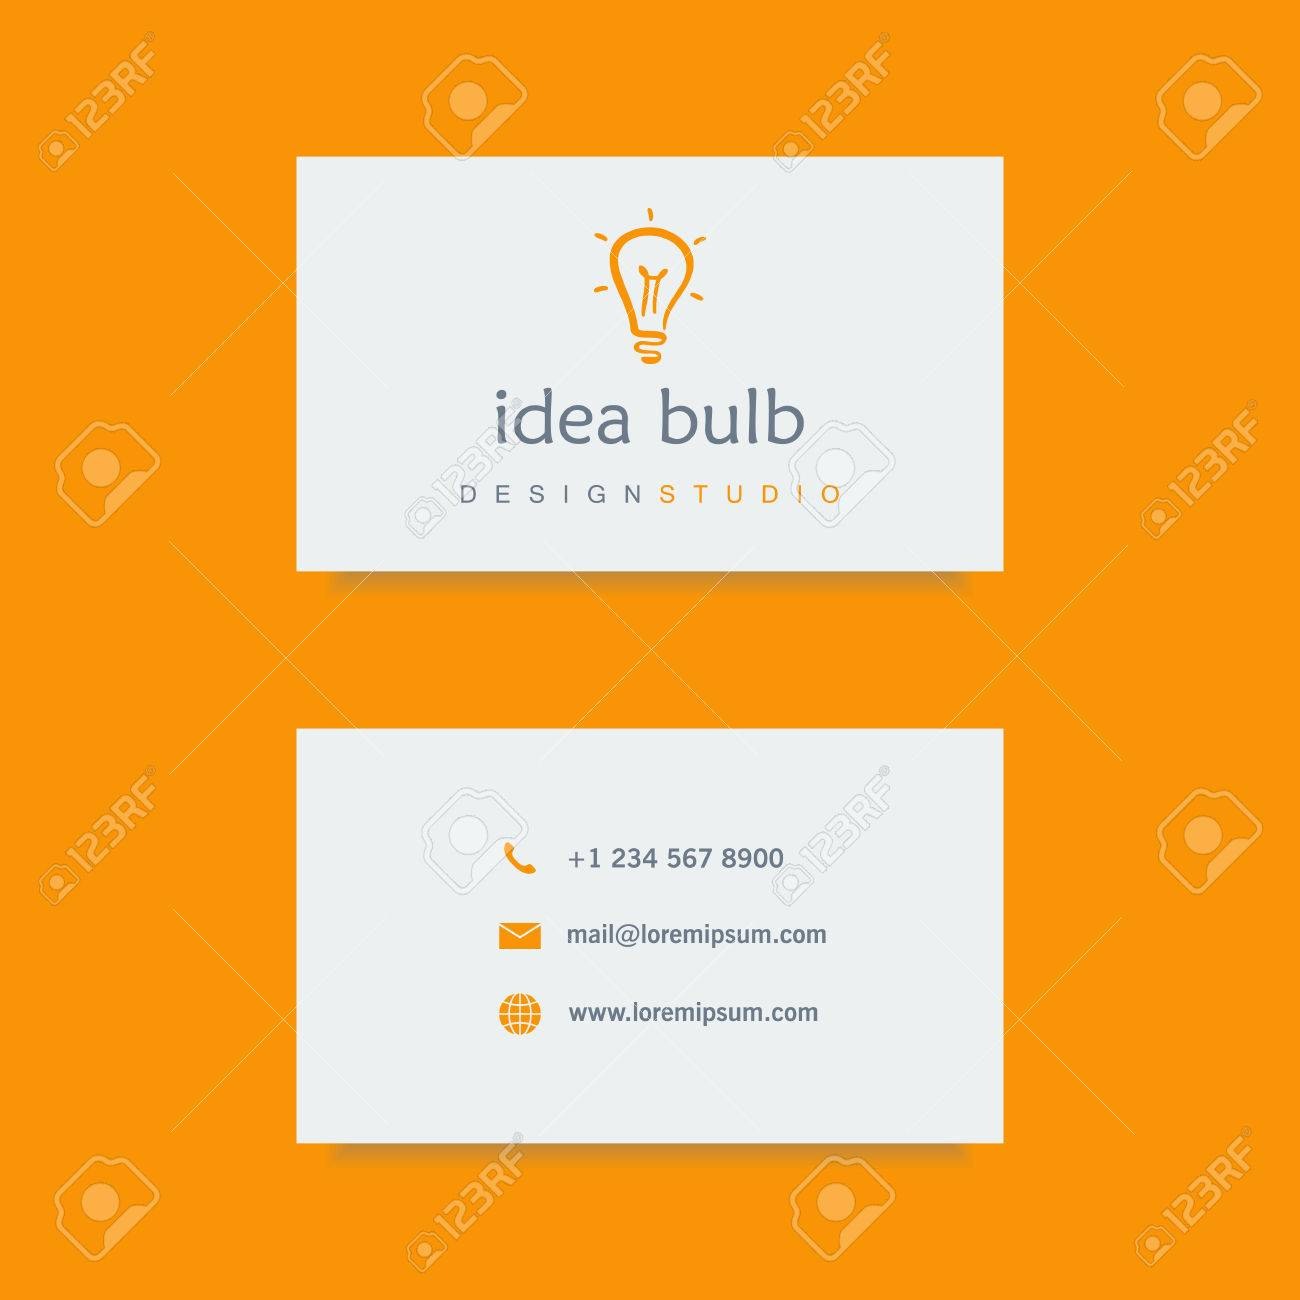 Business cards schenectady ny gallery card design and card template mpower team ambit energy business cards mpower team ambit energy business cards schenectady ny image collections cheaphphosting Image collections